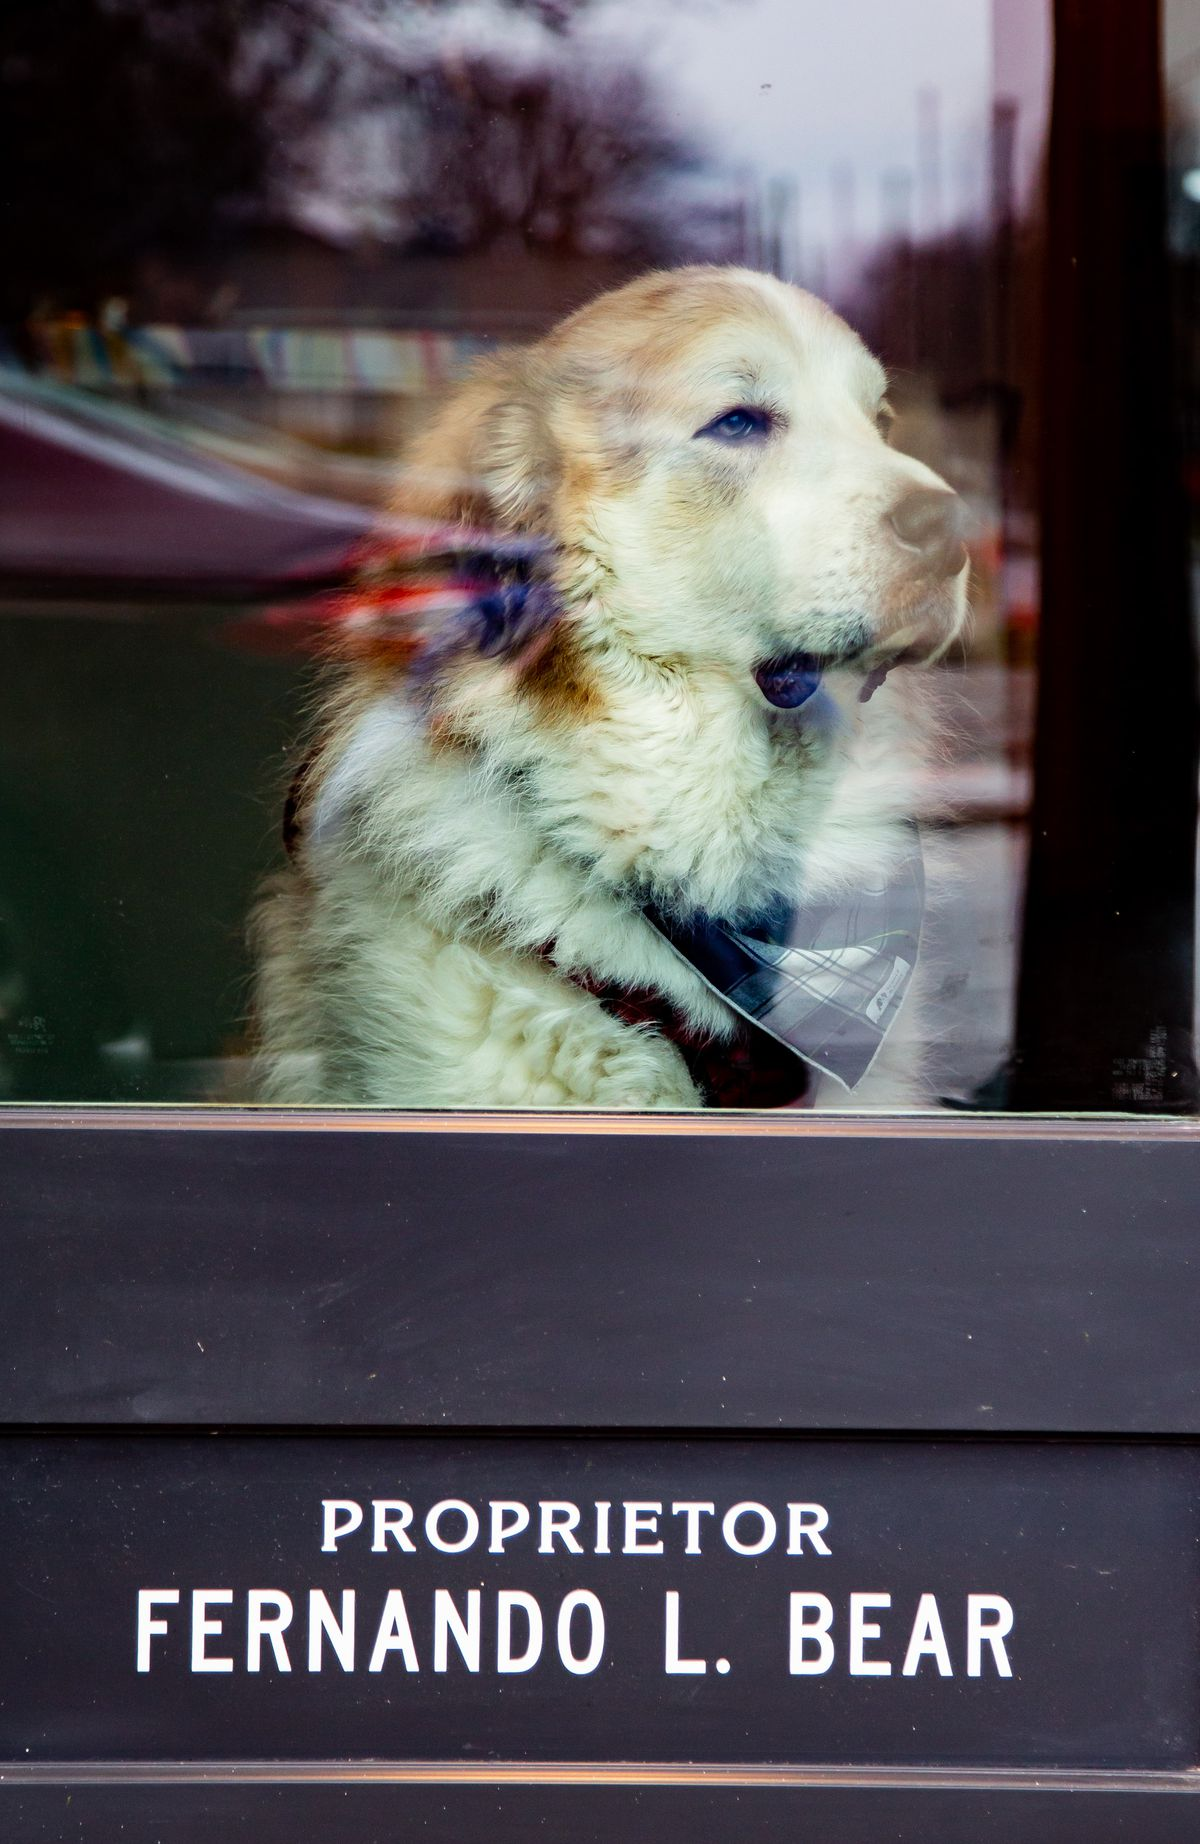 A shot of Fernando L. Bear the dog looking out of the front door window at Little Bear in Summerhill